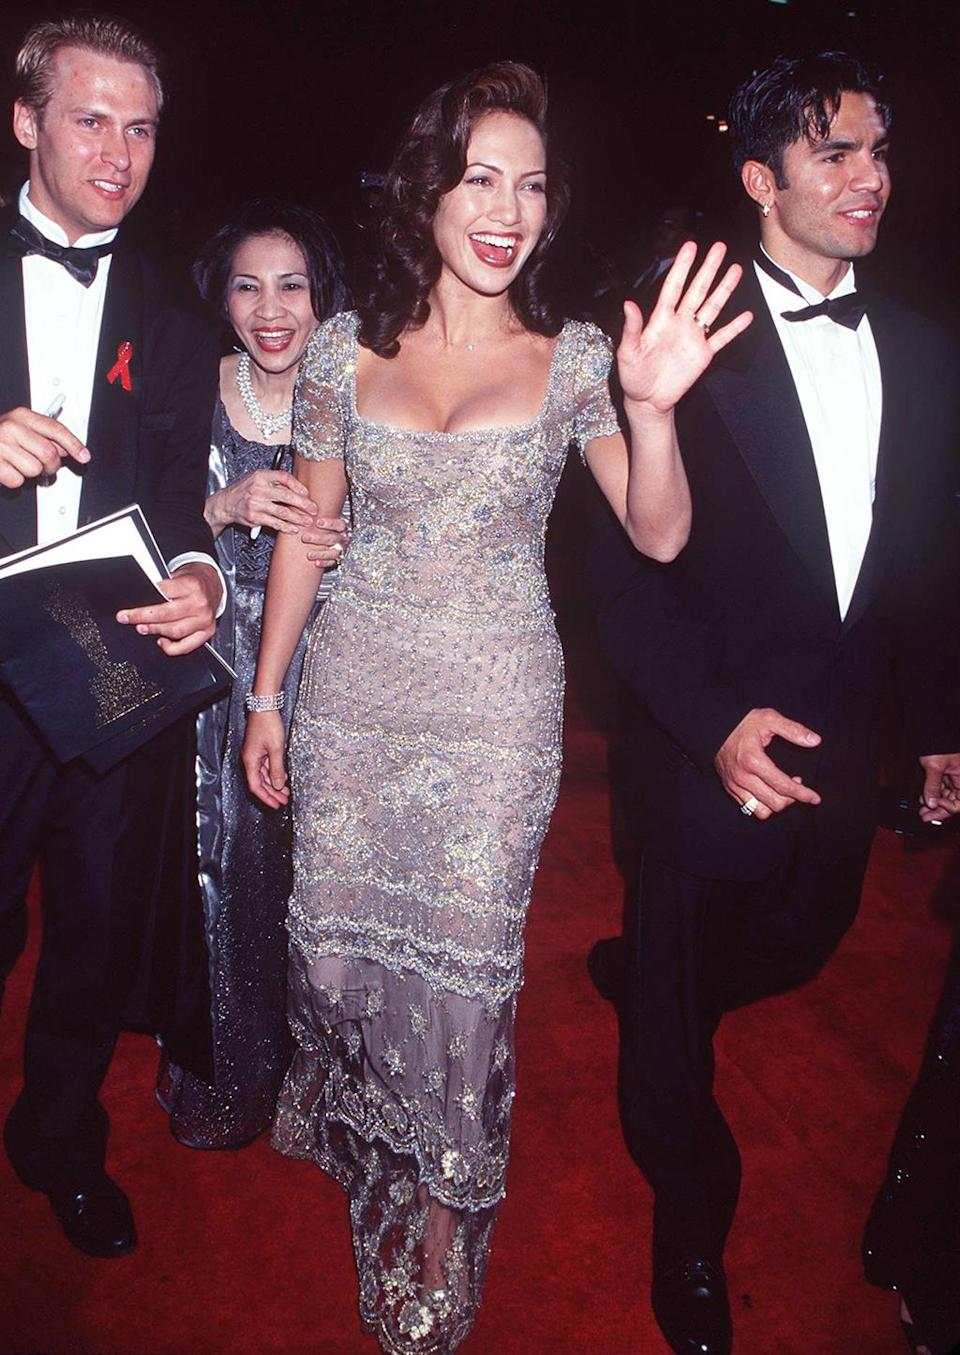 <p>Lopez gained attention for her breakout role in 'Selena,' which opened three days before the Oscars. (Photo: Jeffrey Mayer/WireImage) </p>